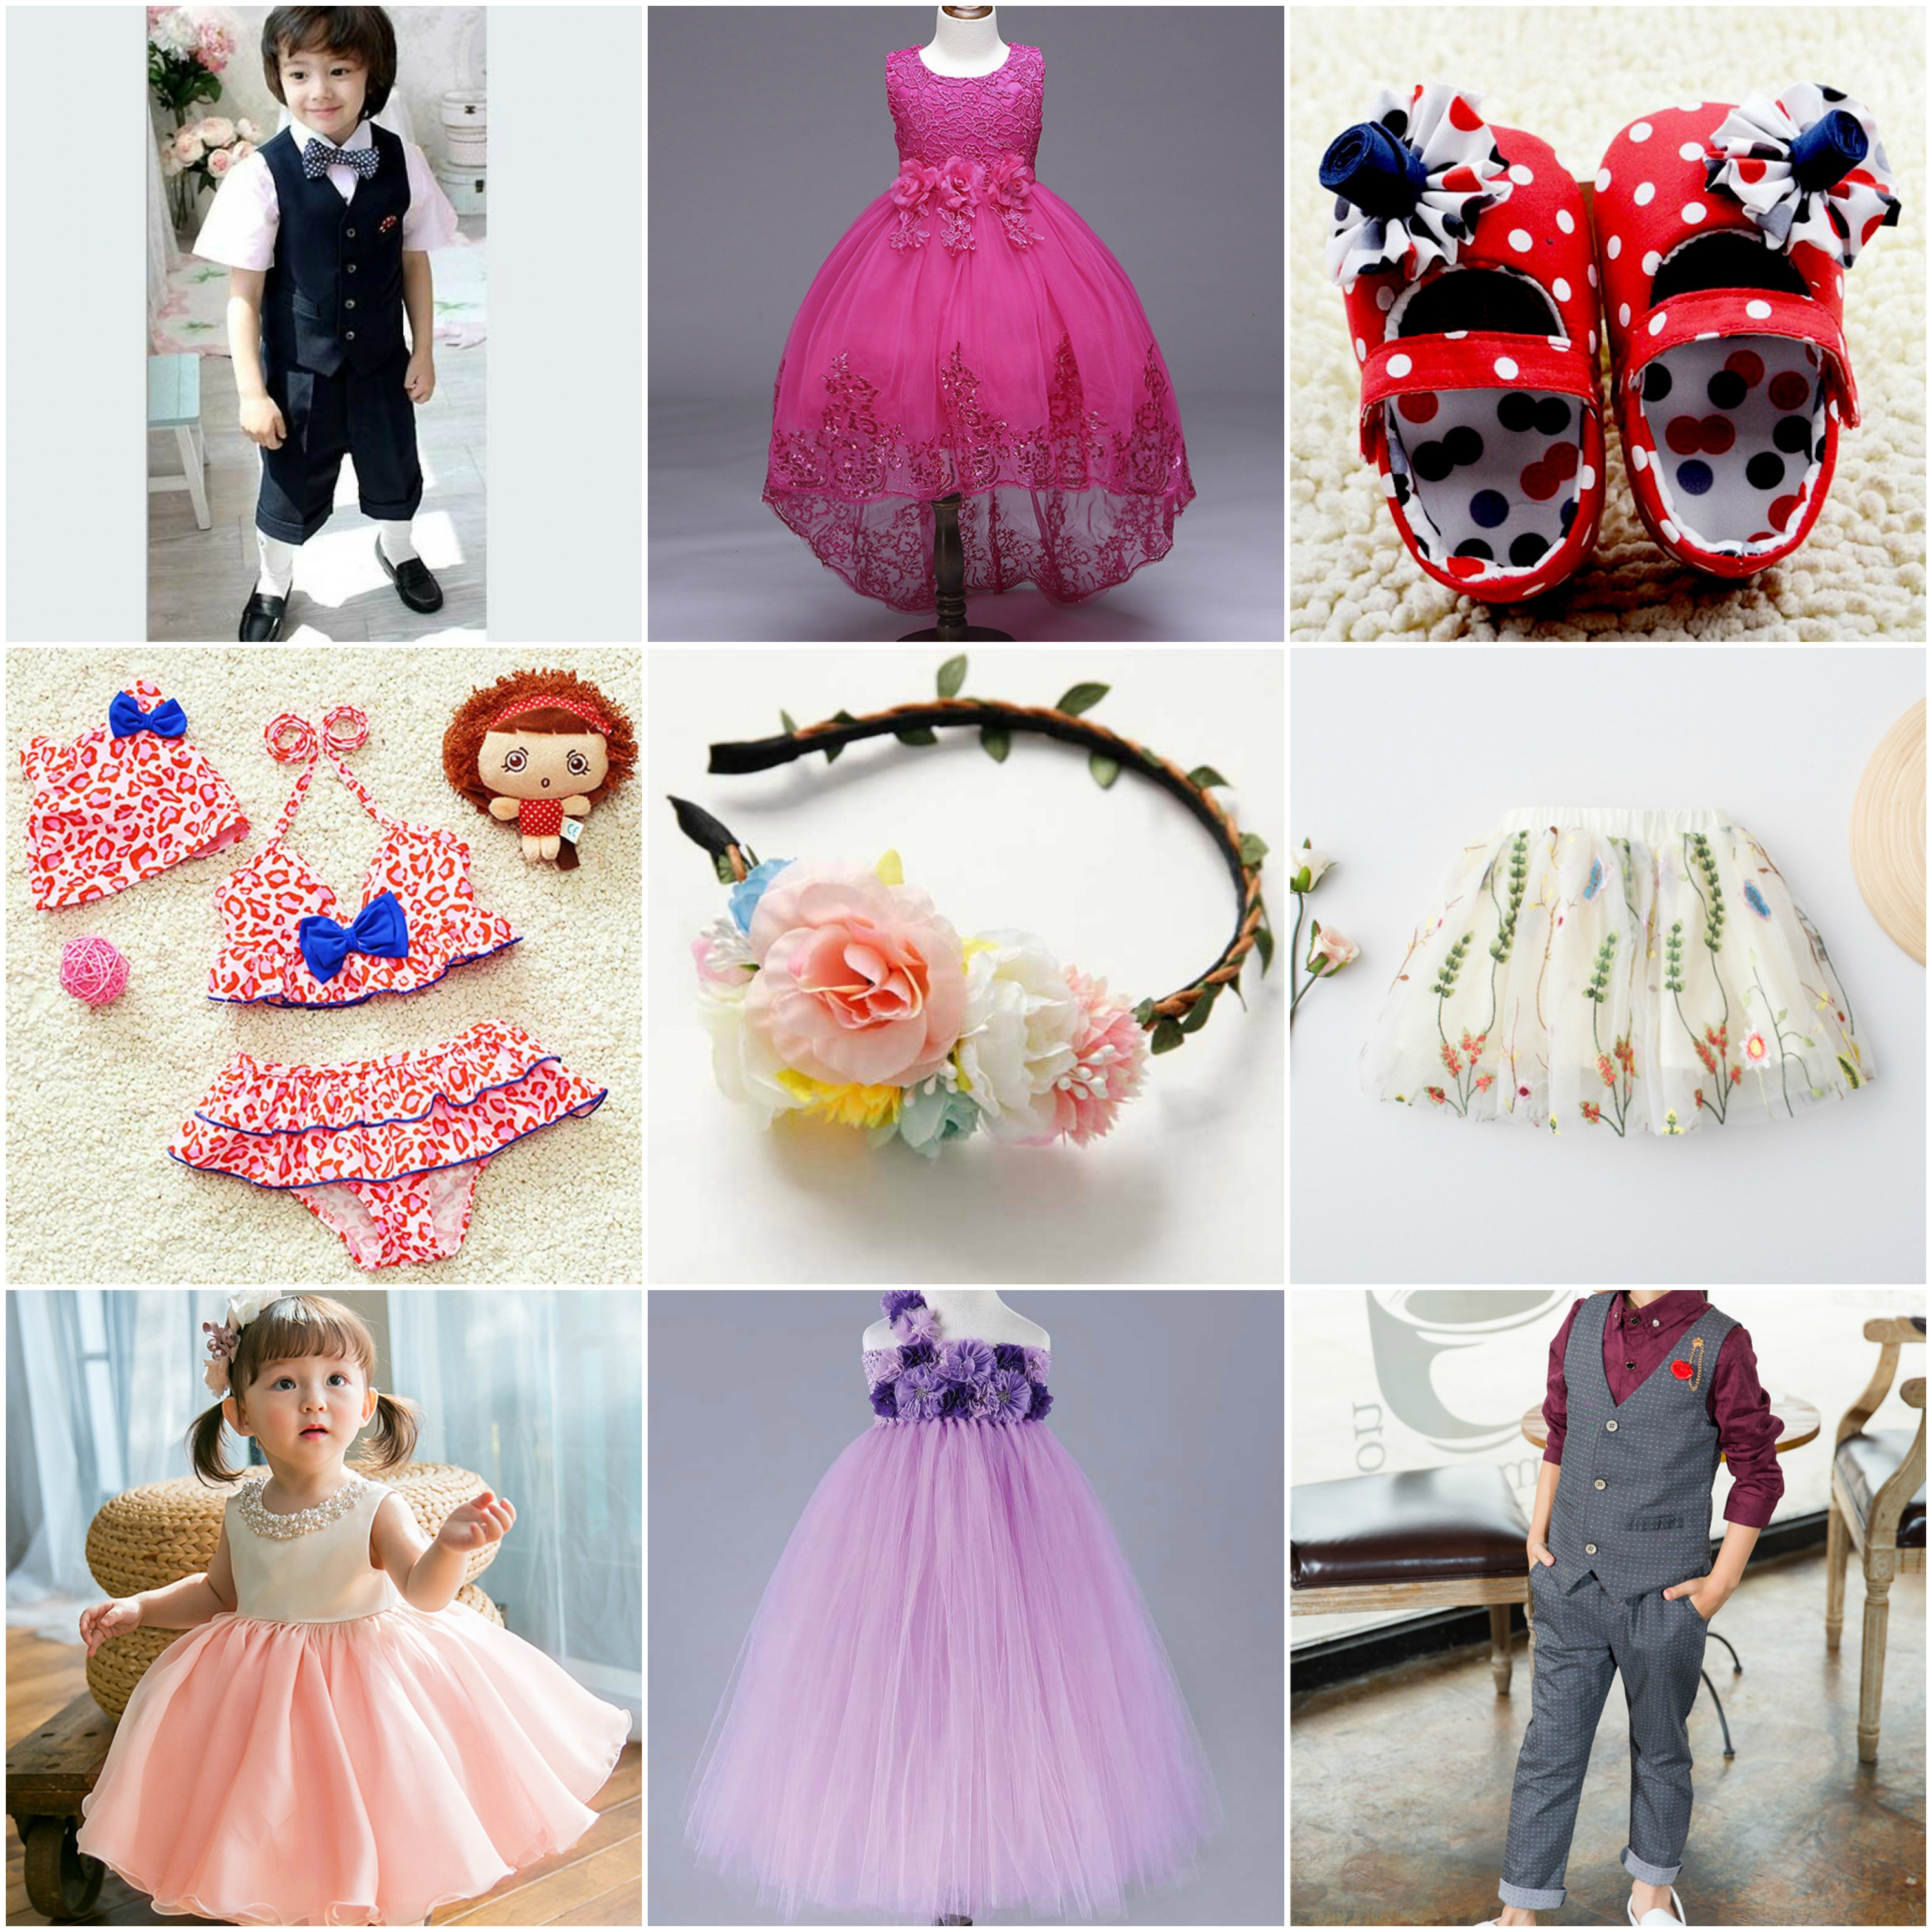 36ae94ae22b13 Are you looking for dresses for kids who lives in Delhi? Well, we have a  huge collection from which you can explore amazing party dresses for baby  girl.